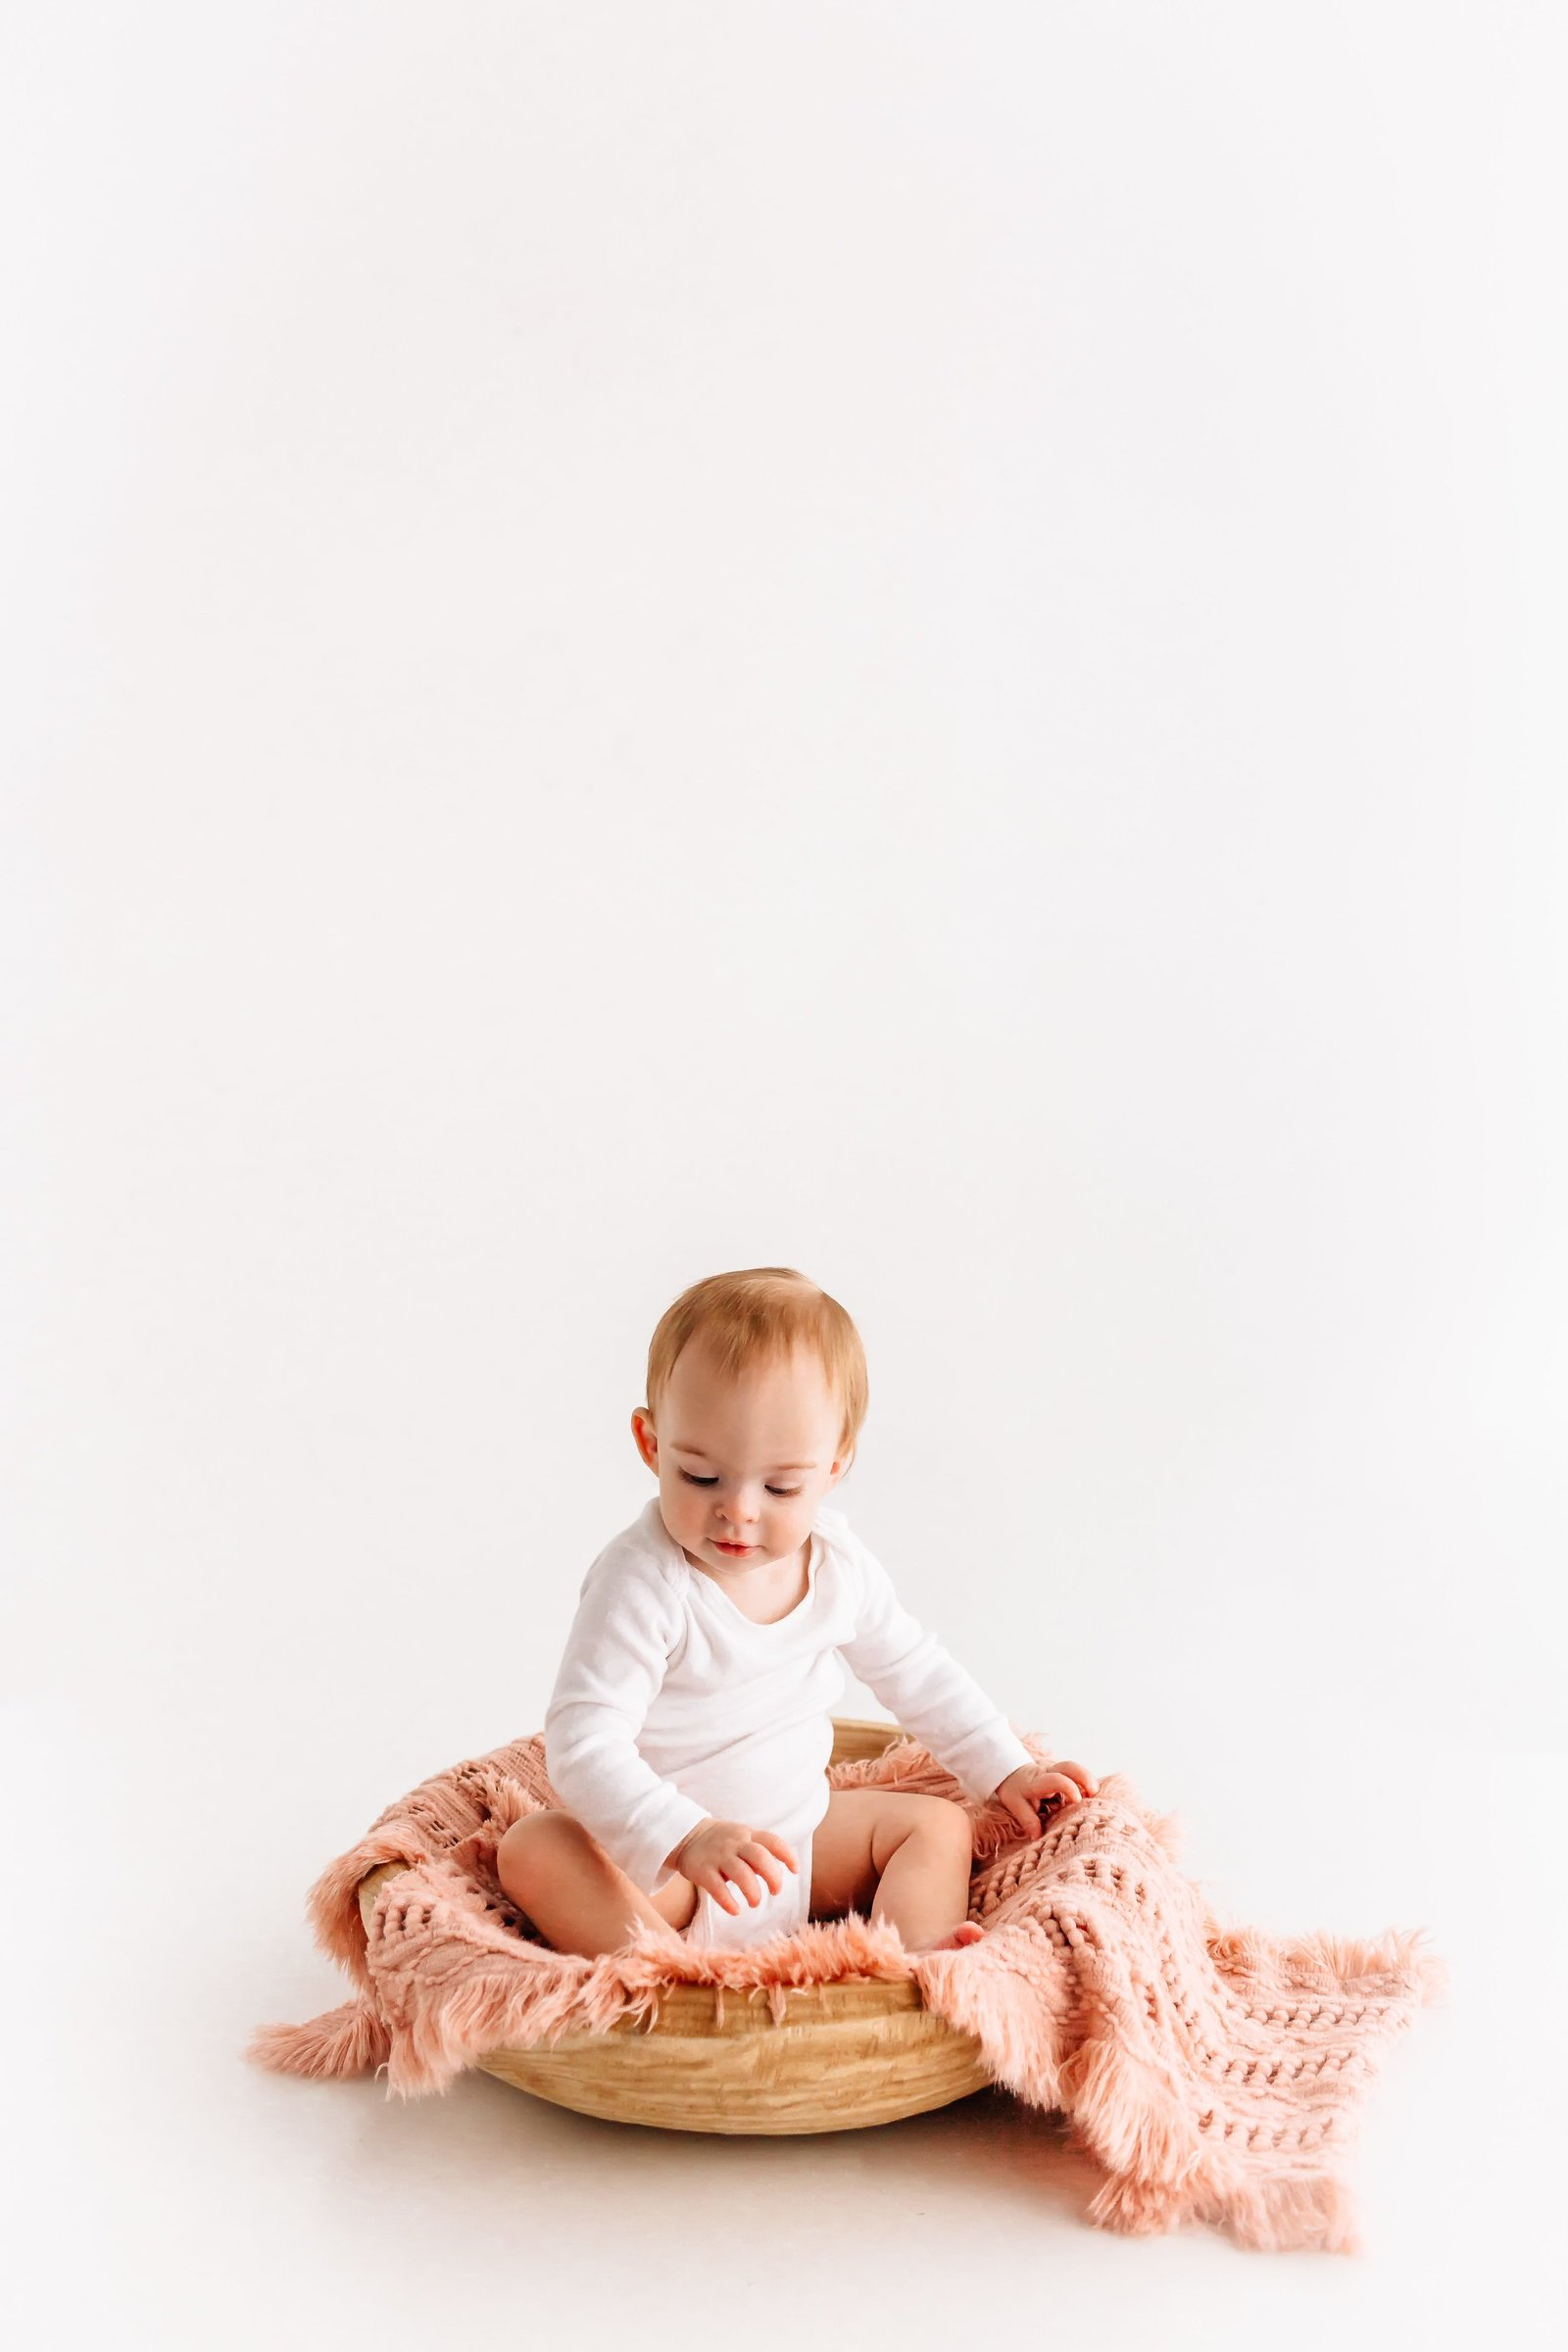 St_Louis_Baby_Photographer_Kelly_Laramore_Photography_71